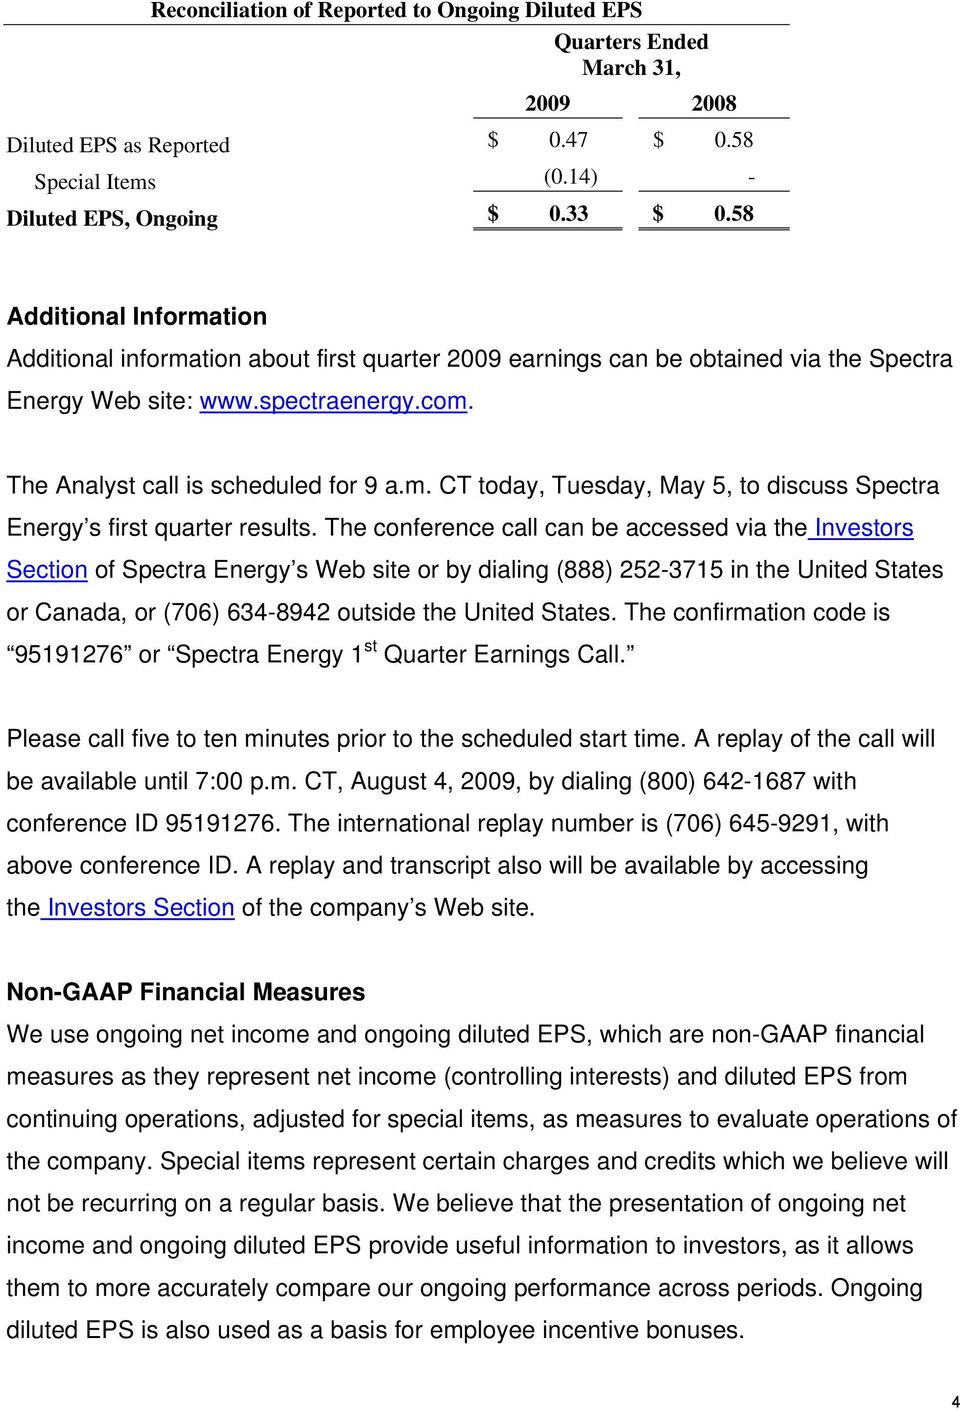 The conference call can be accessed via the Investors Section of Spectra Energy s Web site or by dialing (888) 252-3715 in the United States or Canada, or (706) 634-8942 outside the United States.